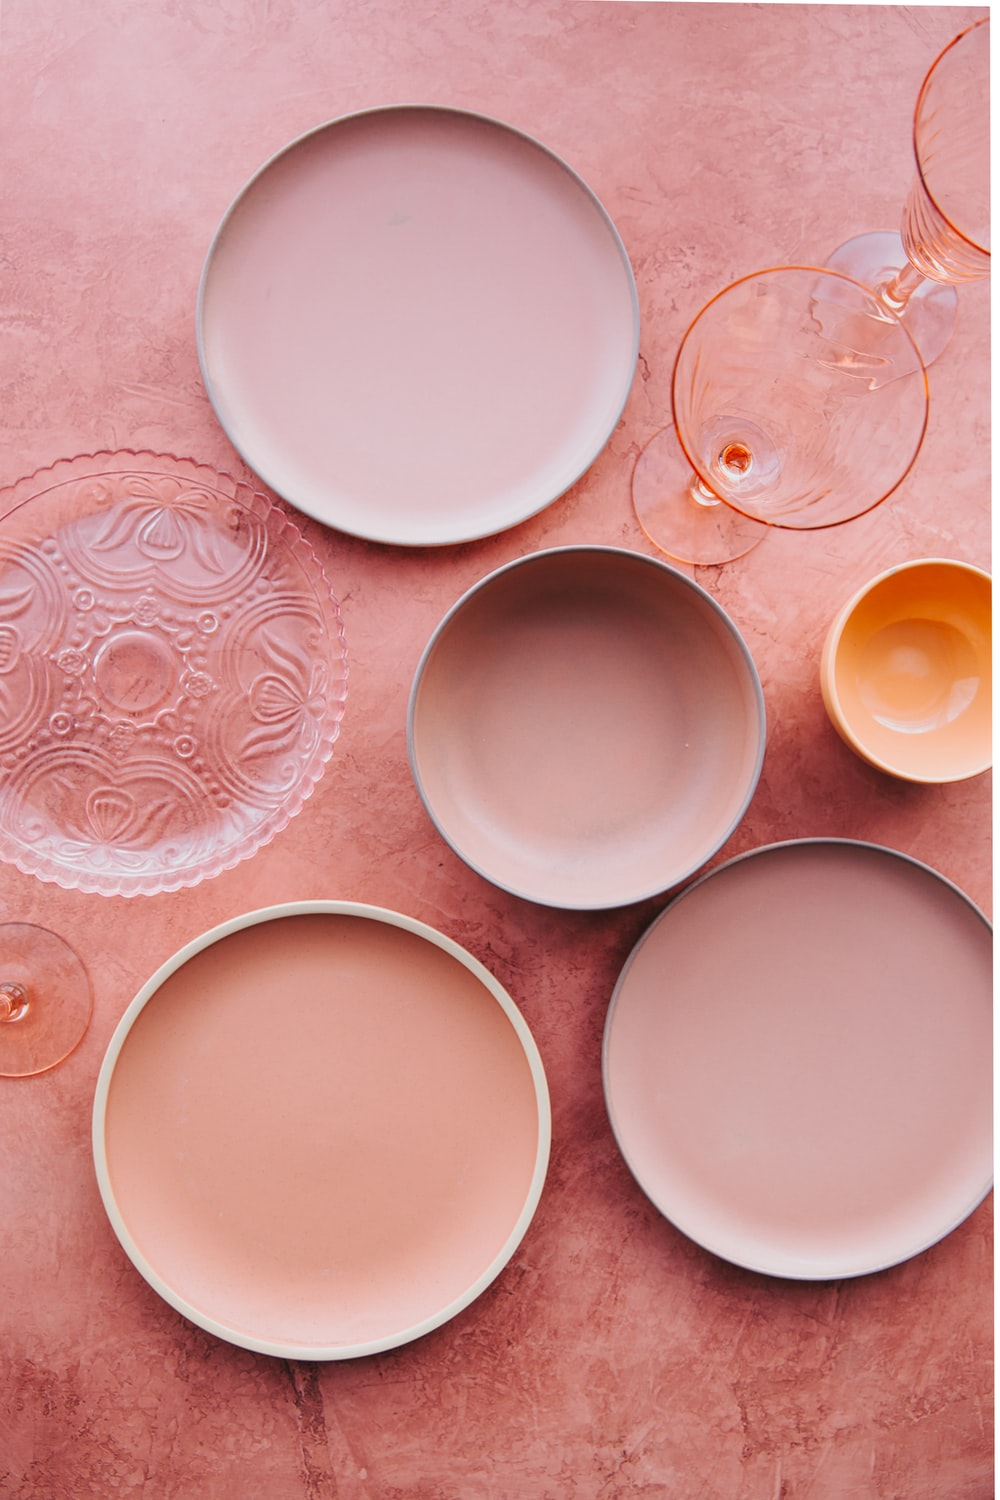 assorted plates on brown surface